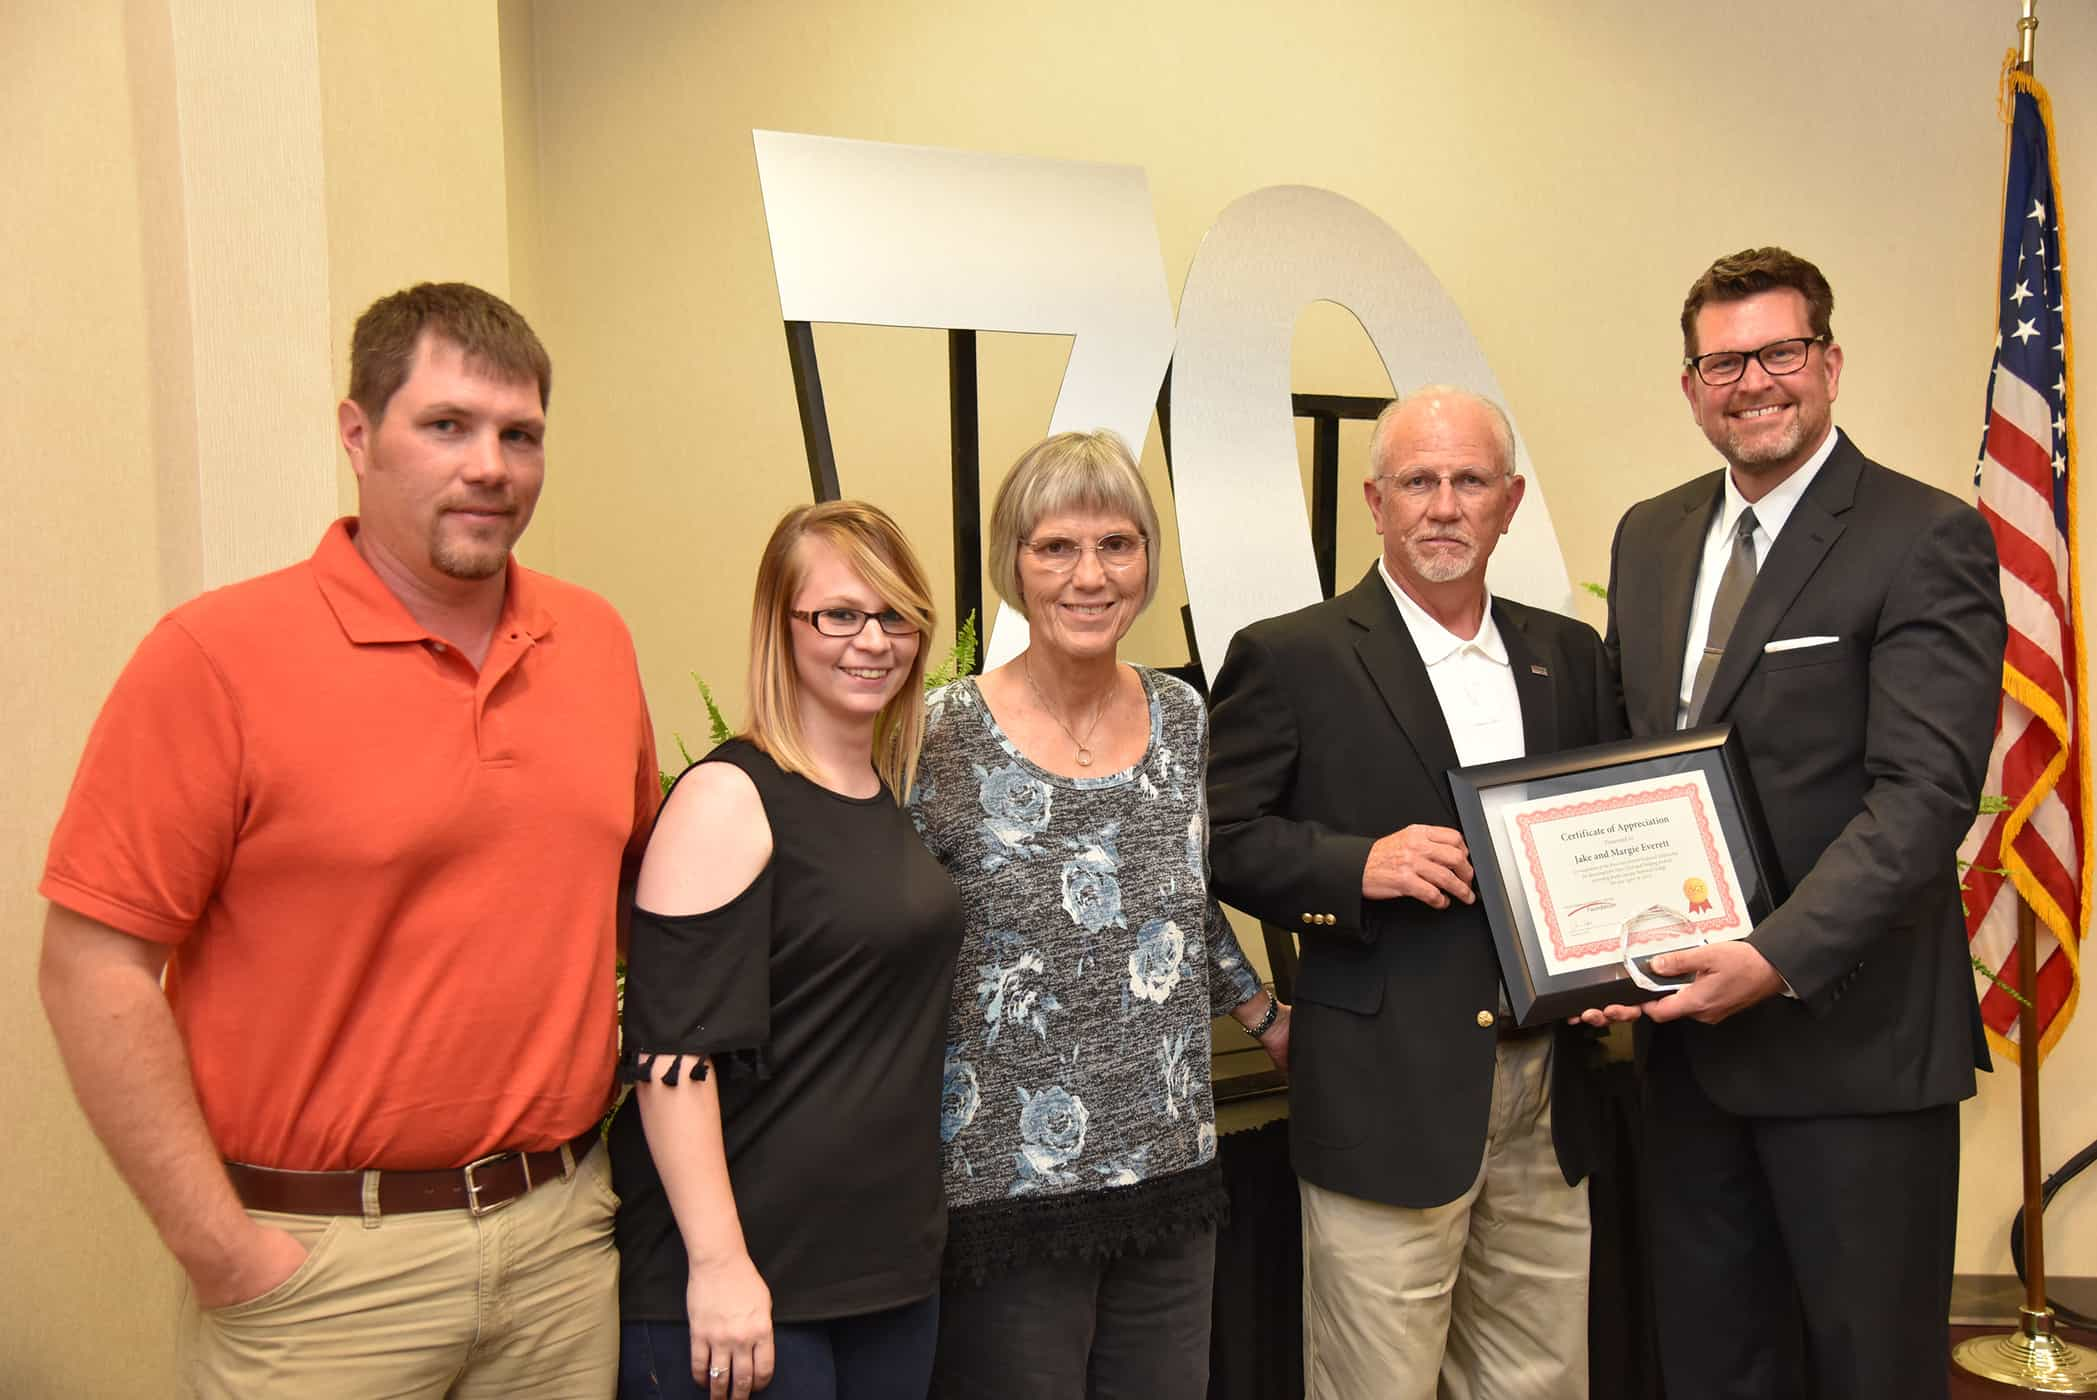 Dr. John Watford, President of South Georgia Tech is shown above recognizing the Jake Everett family for their endowment of the Rose Ann Everett scholarship for John Deere Tech and Welding students in memory of their daughter Rose Ann Everett. Shown above (l to r) are Jayson and Linda Everett and Margie and Jake Everett.